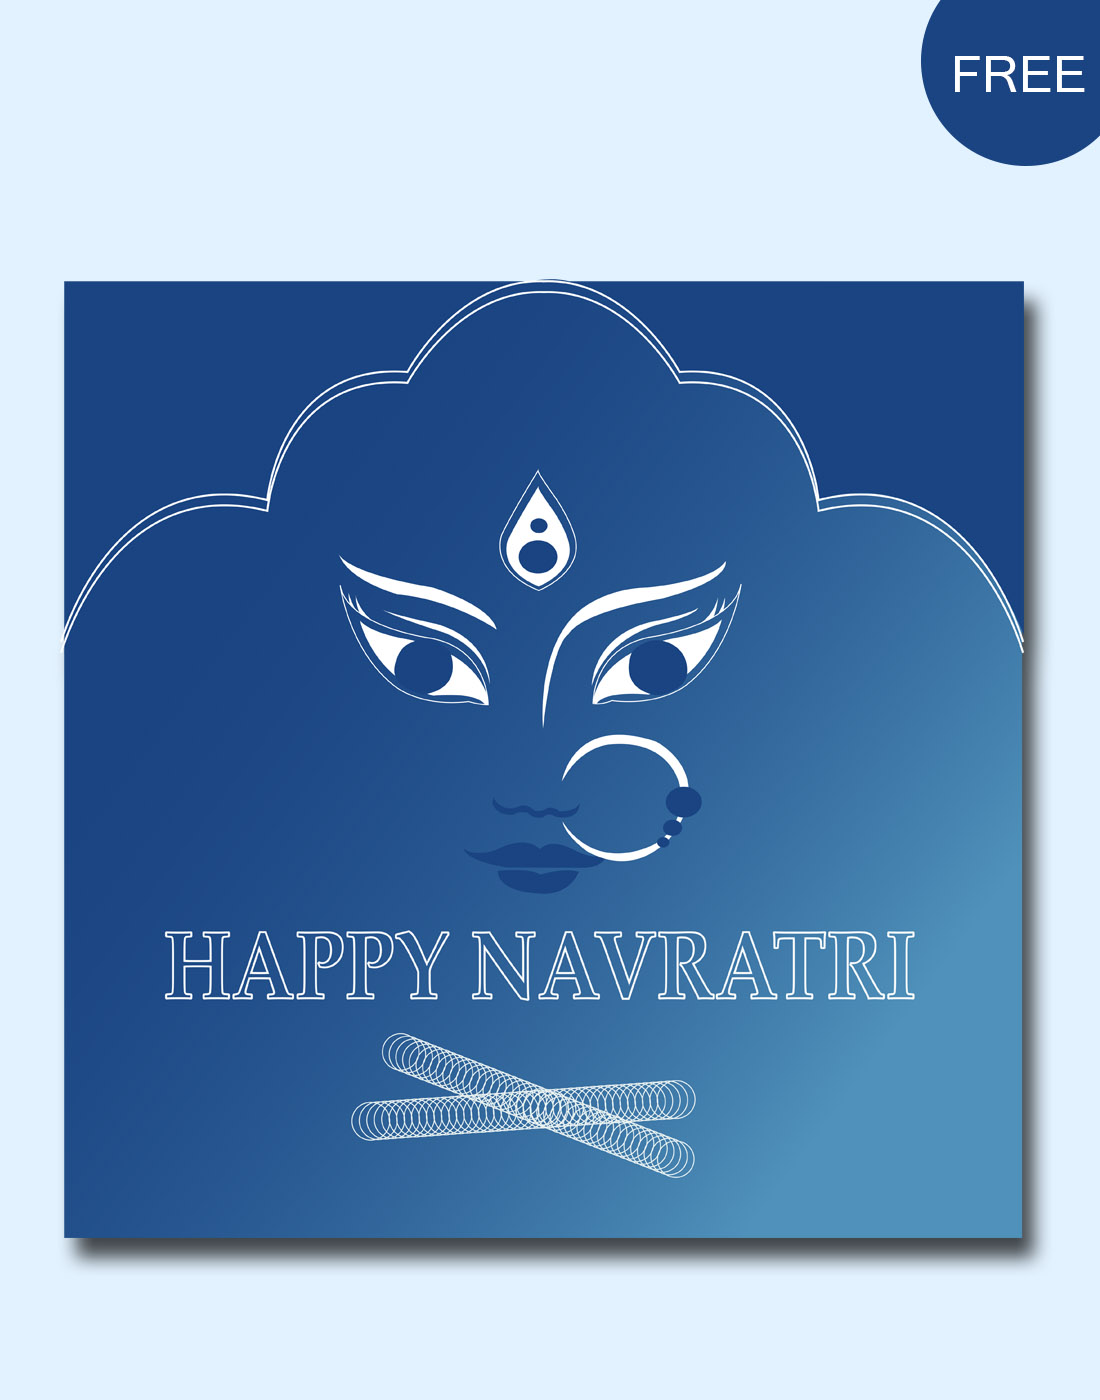 NAVRATRI VECTOR DESIGN